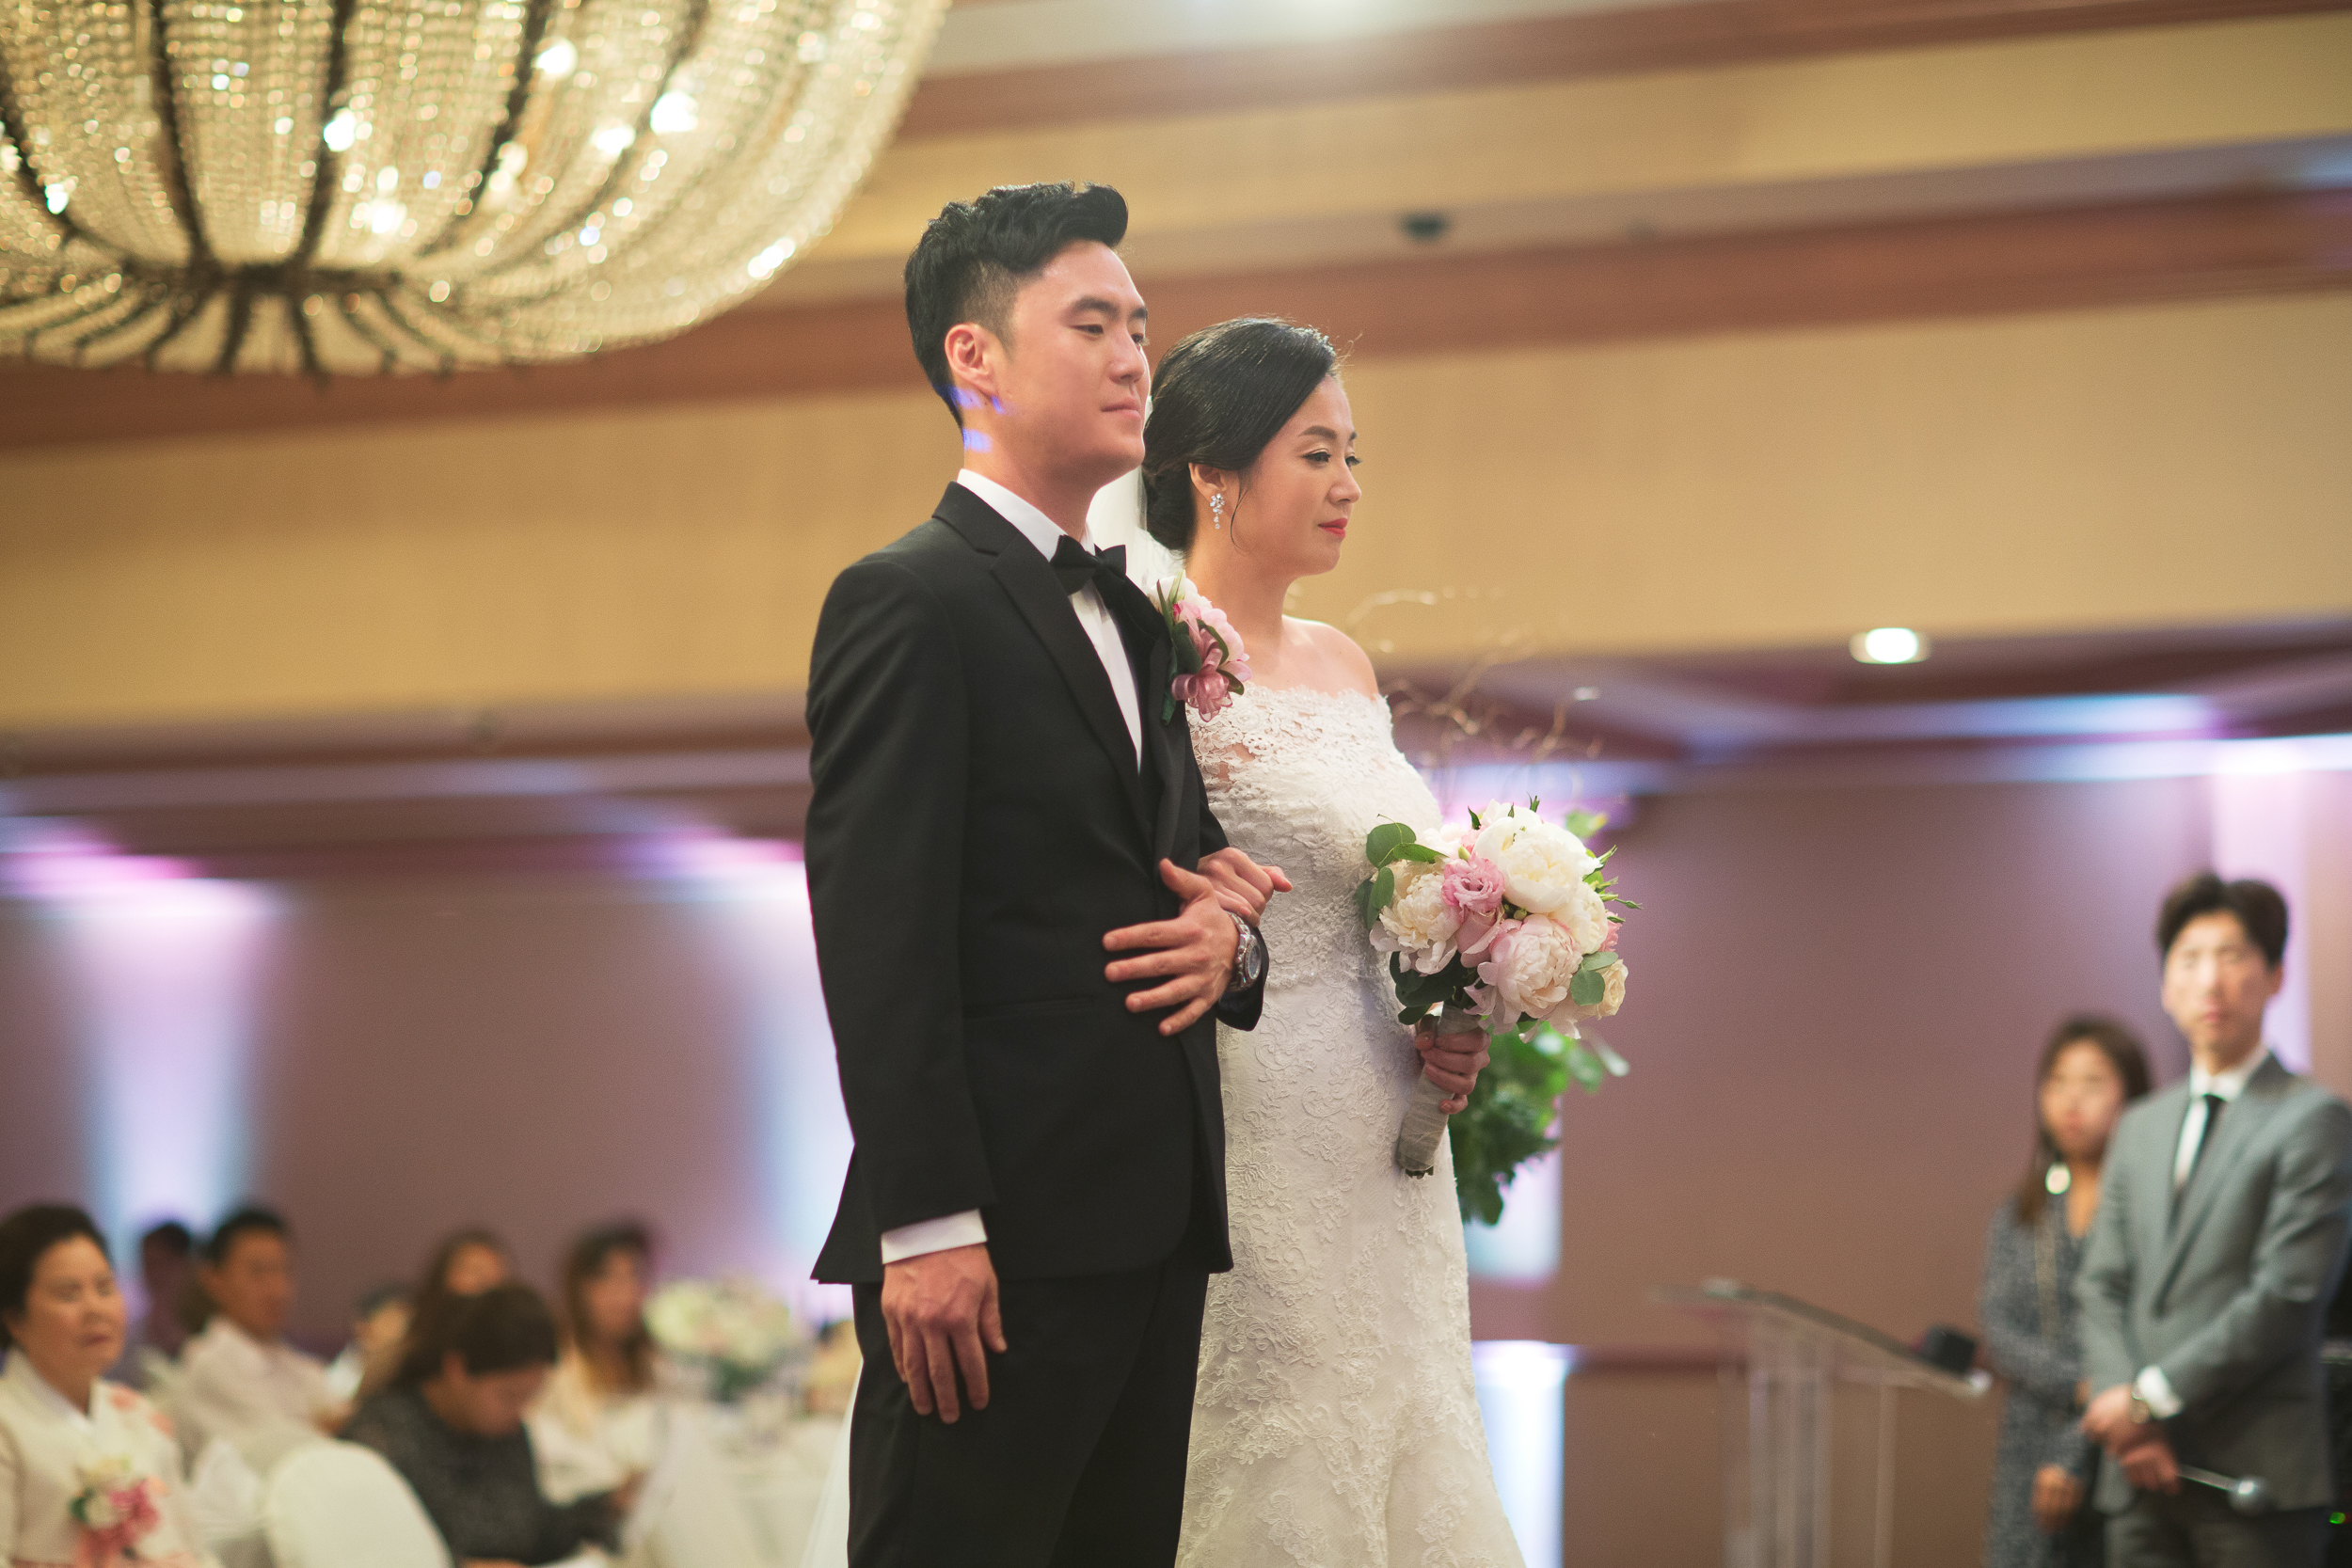 58_Ji Young Choi & Kyungmin Song Wedding